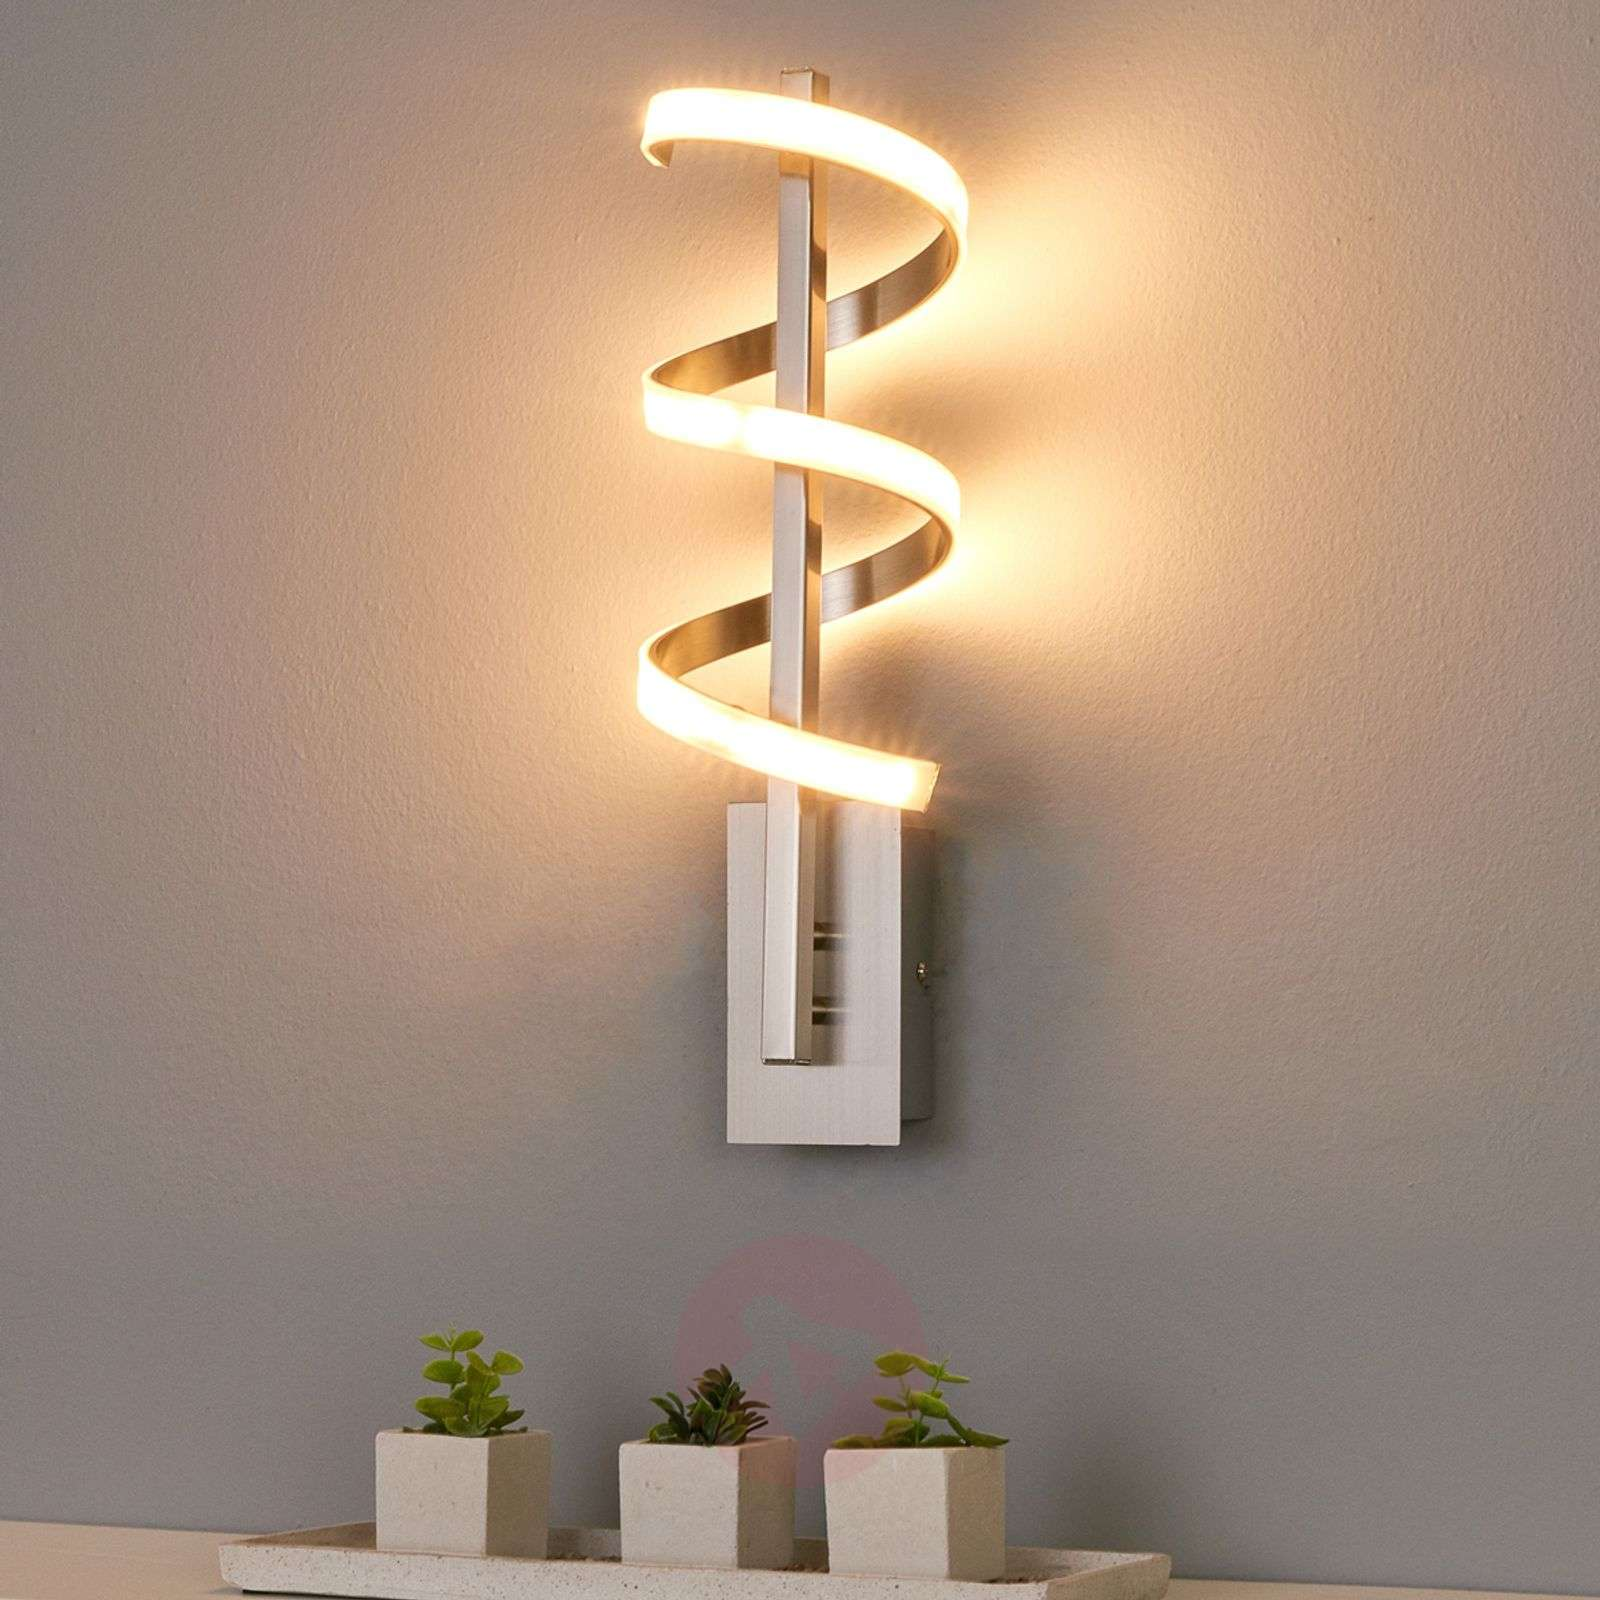 Twisted led wall light pierre lights twisted led wall light pierre 9985029 01 aloadofball Images